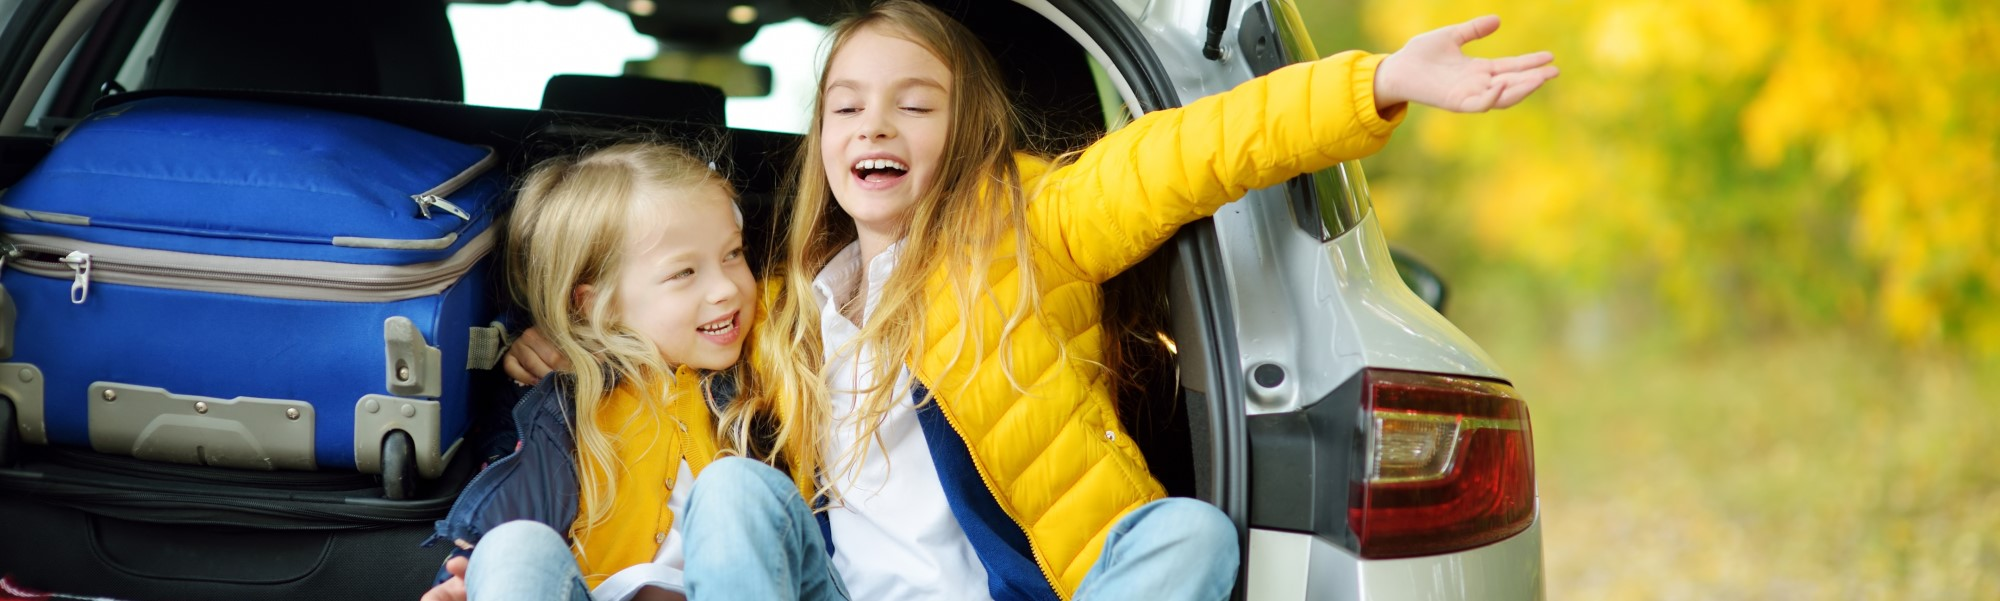 Image of two girls in a car